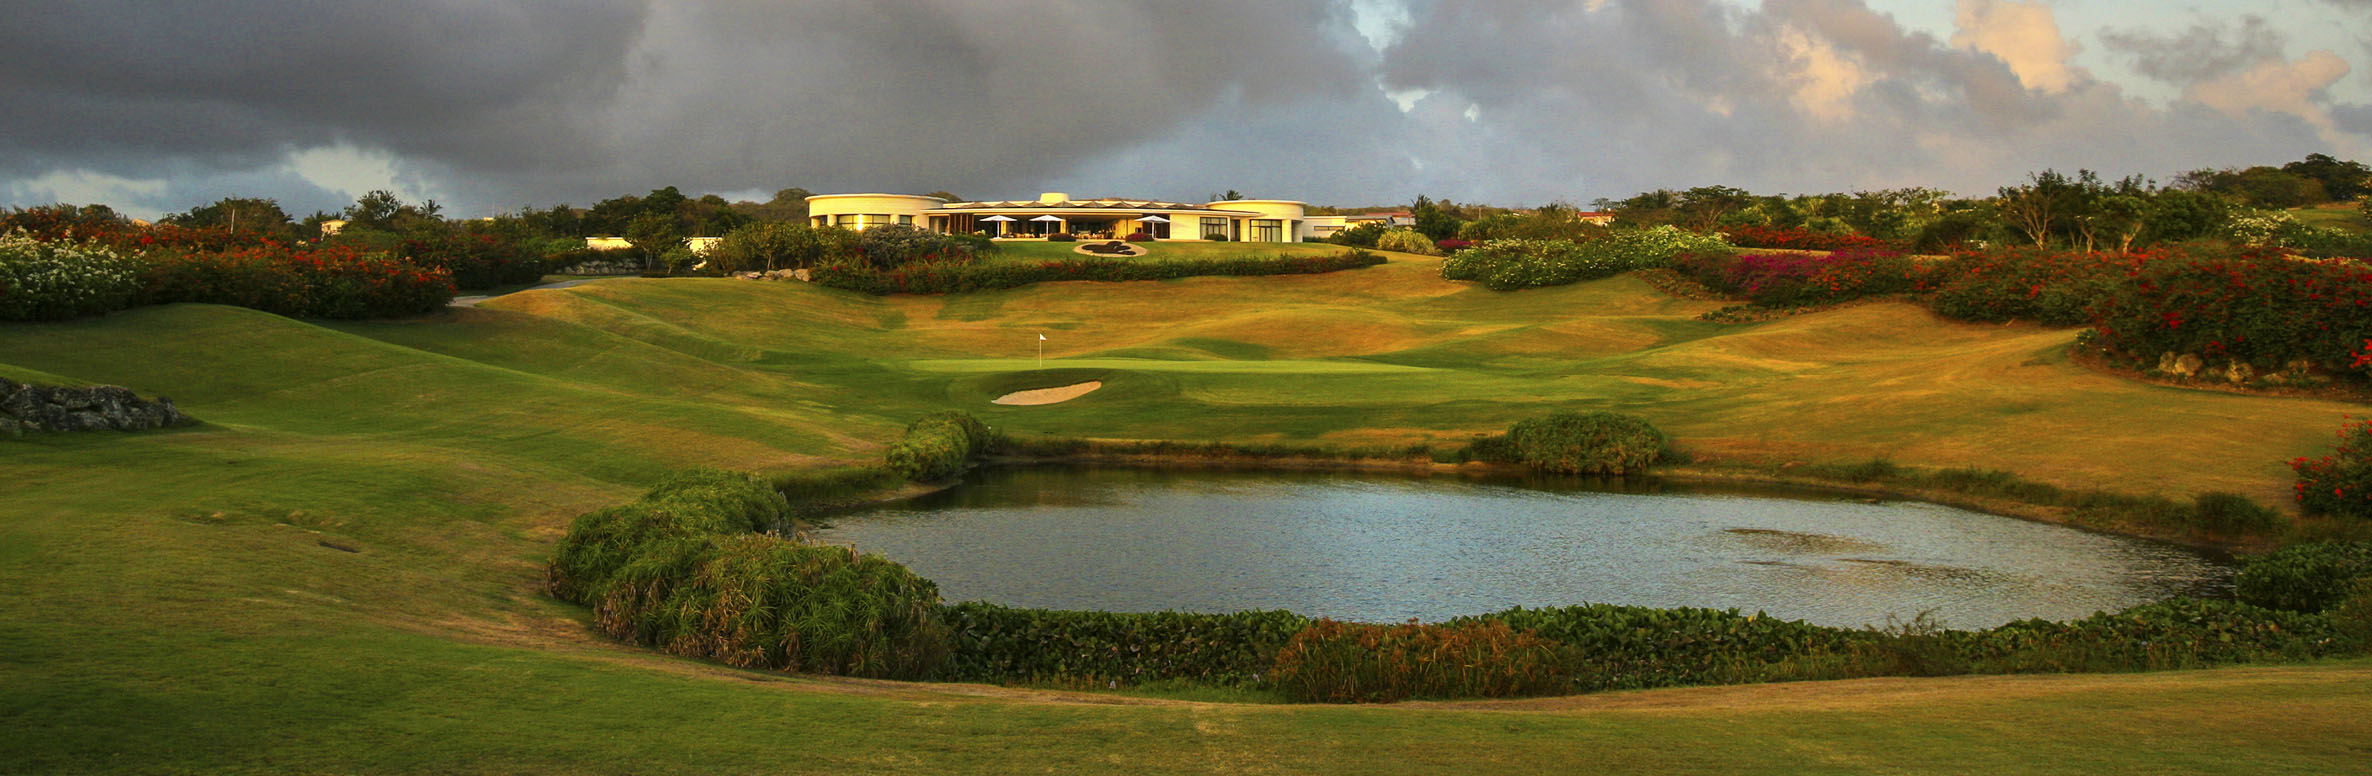 Sandy Lane Golf Club